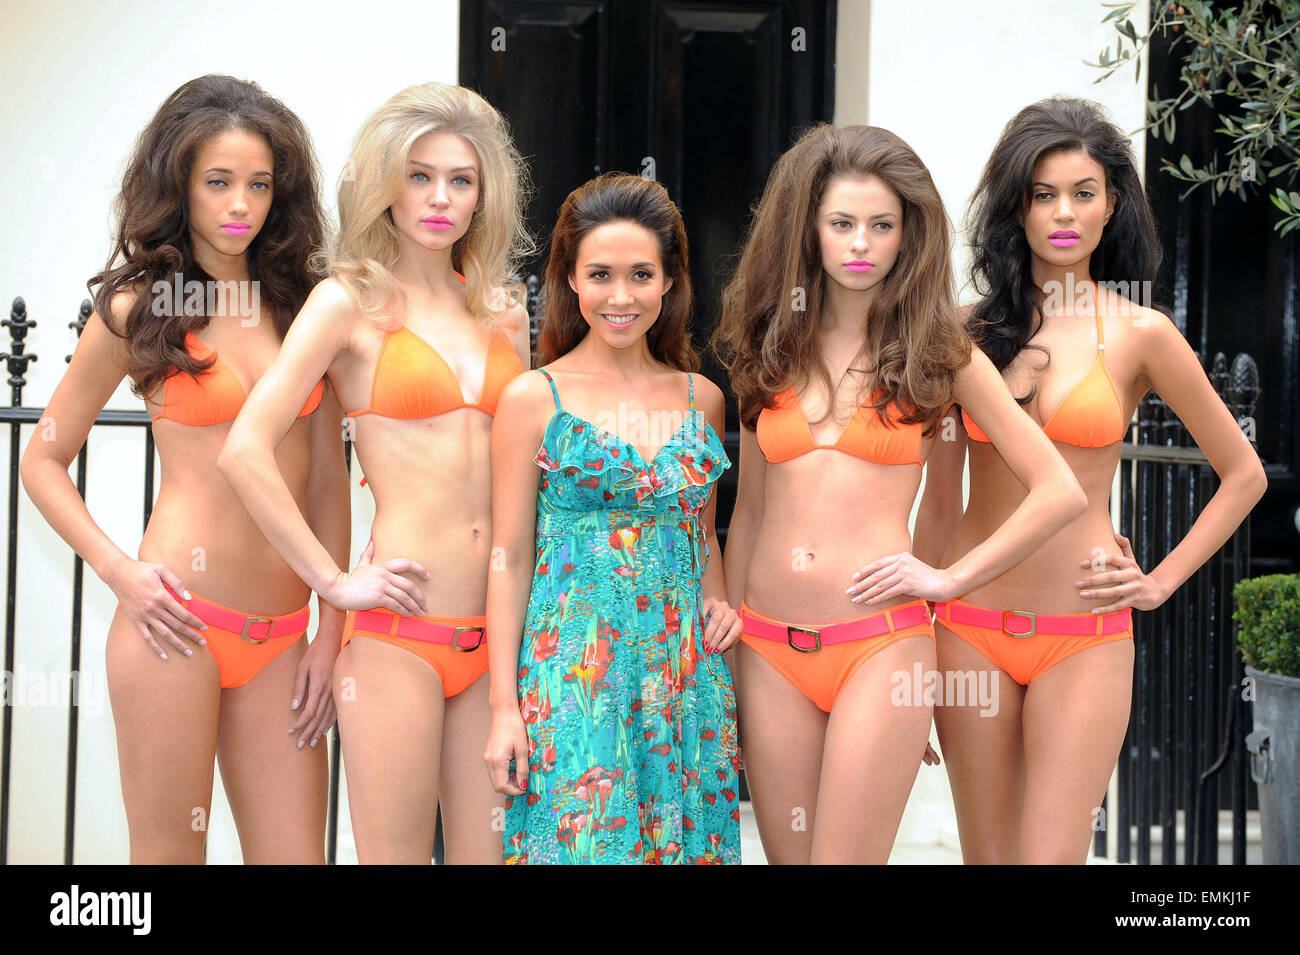 839c2d1a7e LONDON MYLEENE KLASS POSES WITH MODELS AT THE HAYMARKET HOTEL TO LAUNCH HER  NEW SWIMWEAR RANGE FOR LITTLEWOODS.COM IN LONDON